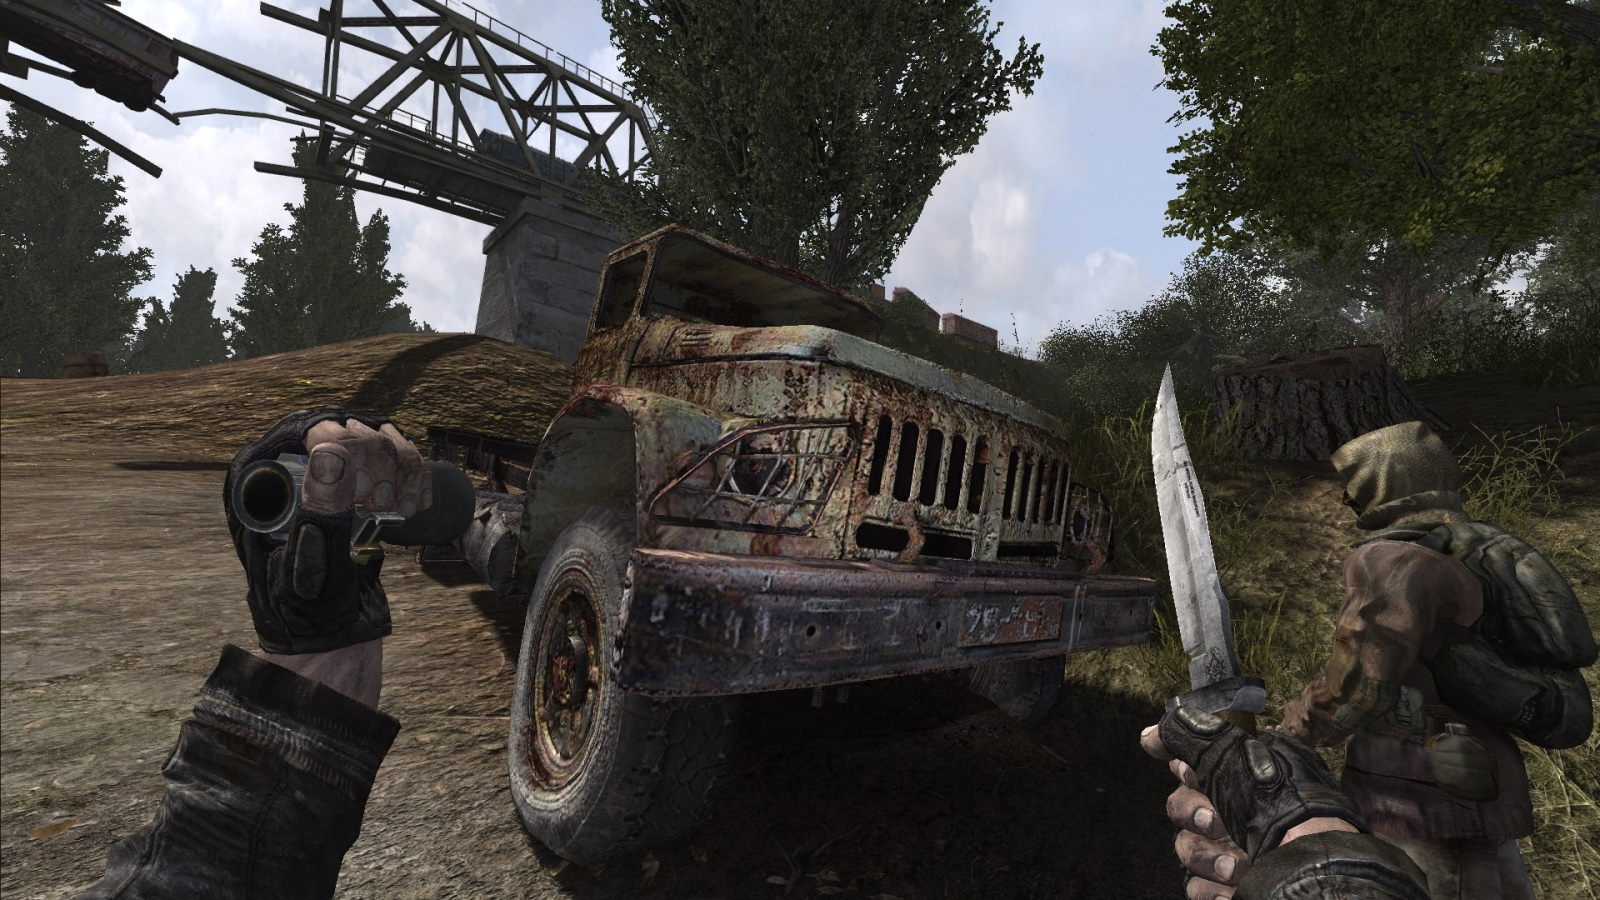 I think it's busted. No drivable vehicles in this mod, sorry.